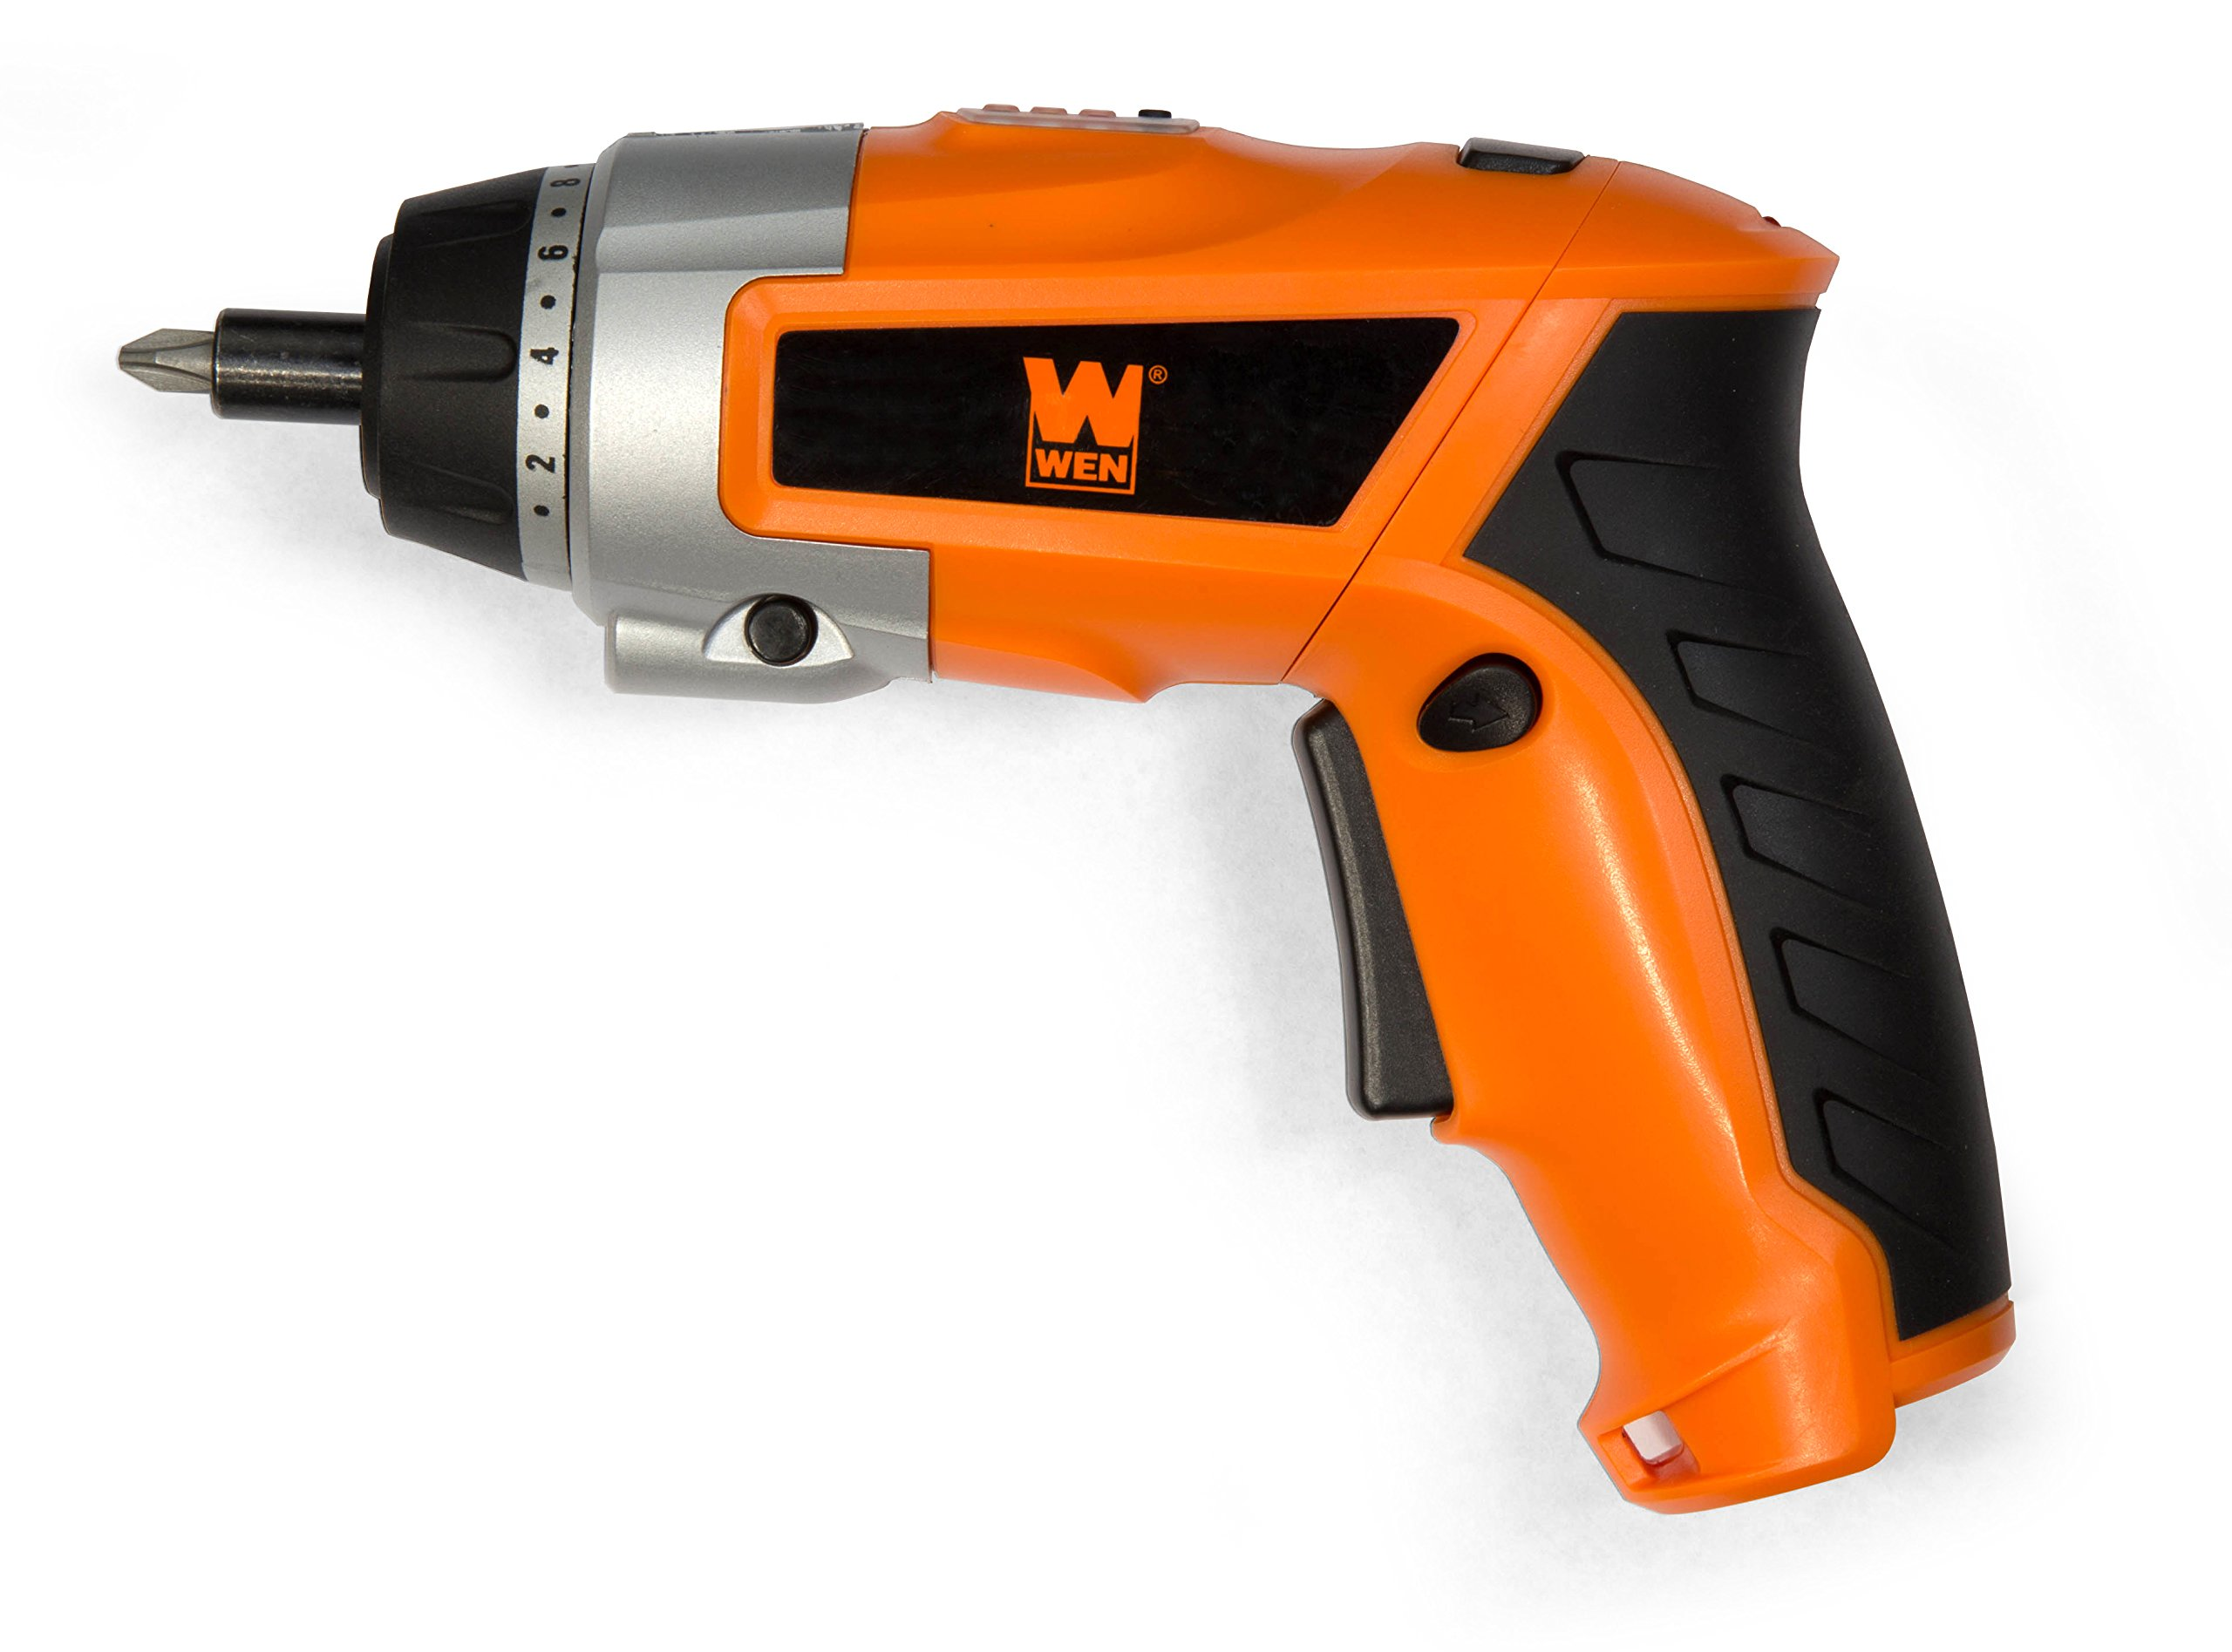 WEN 49036 3.6V Lithium Ion Cordless Rechargeable Screwdriver with Pivoting Handle